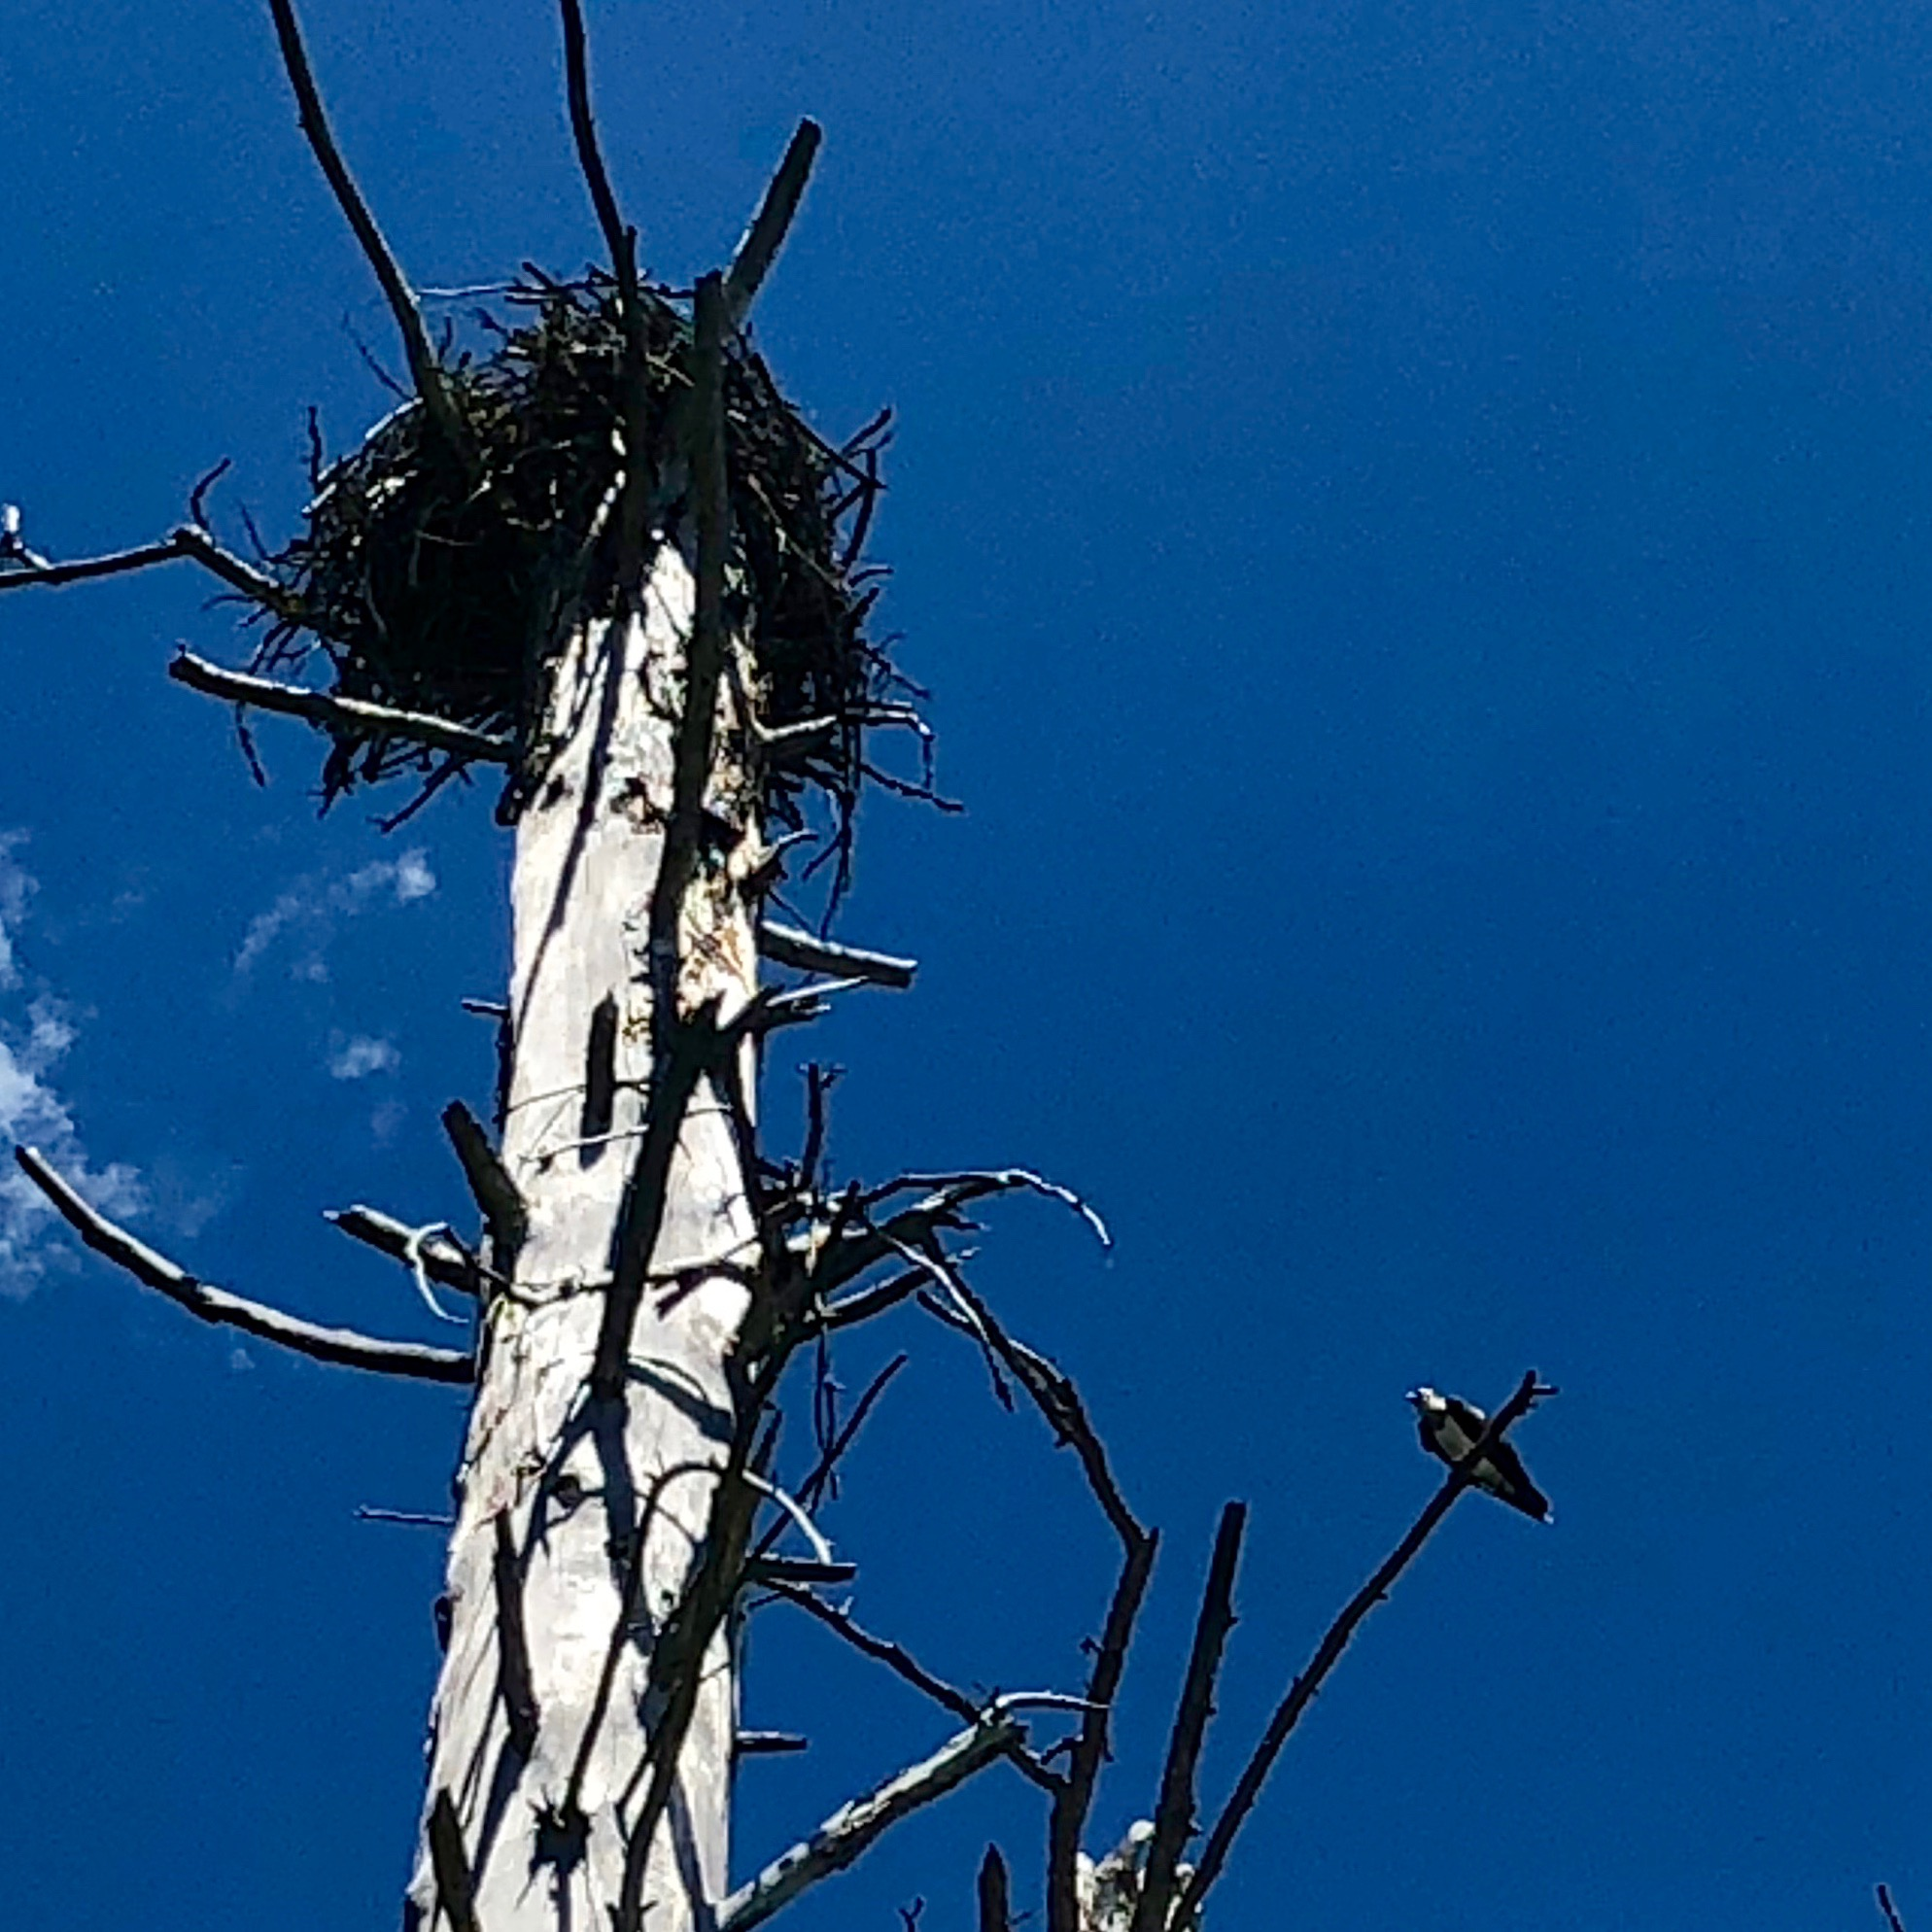 An Osprey and her nest